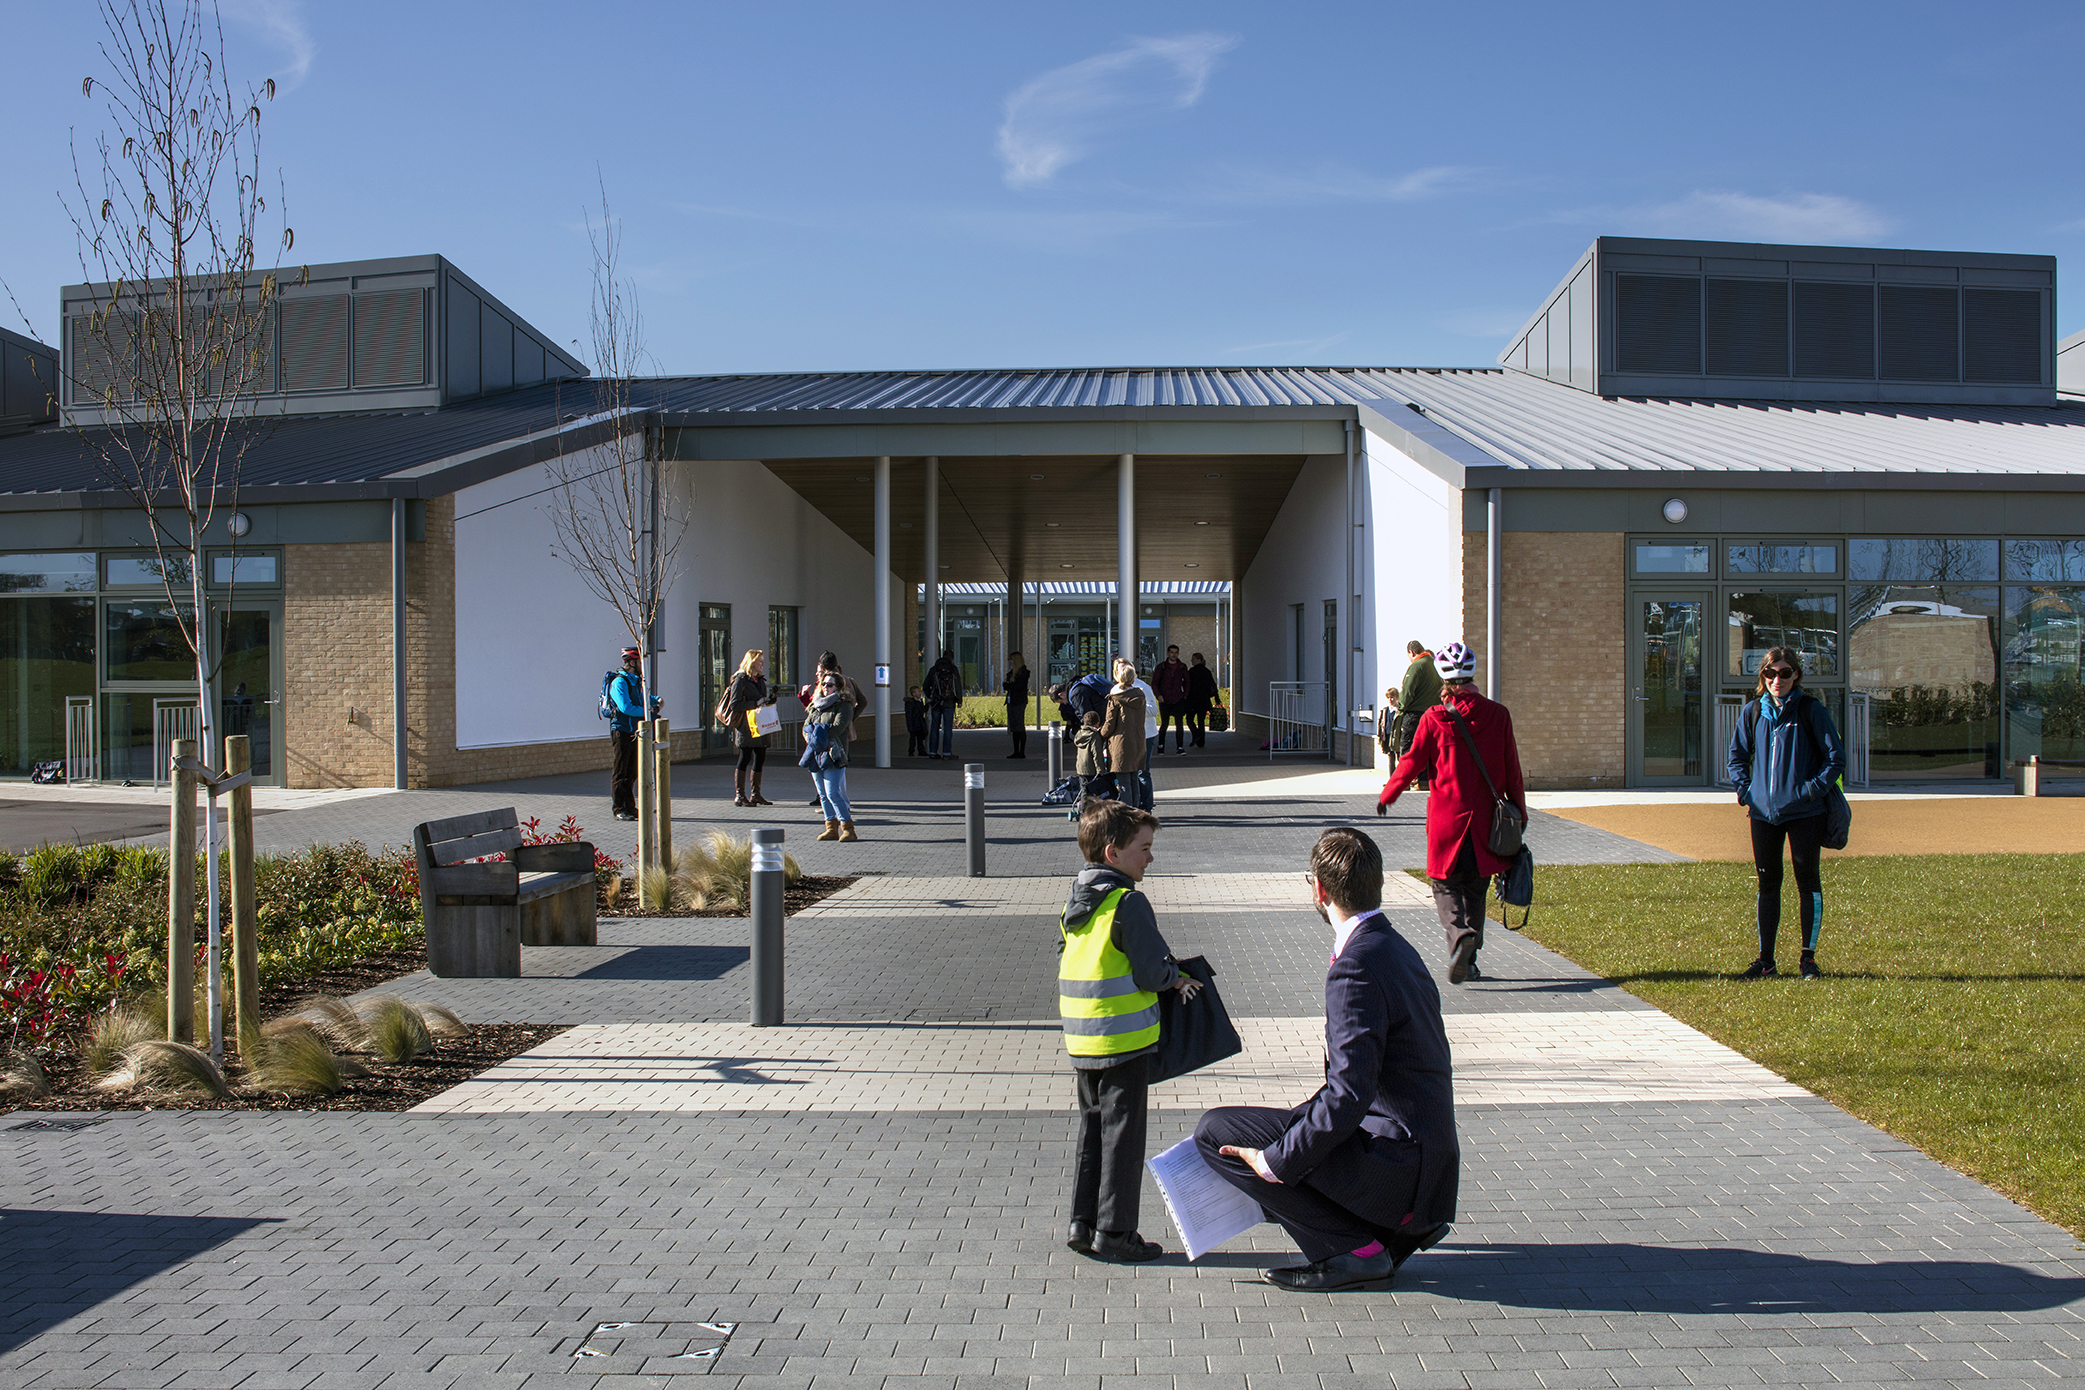 outside - University of Cambridge Primary School by Marks Barfield Architects